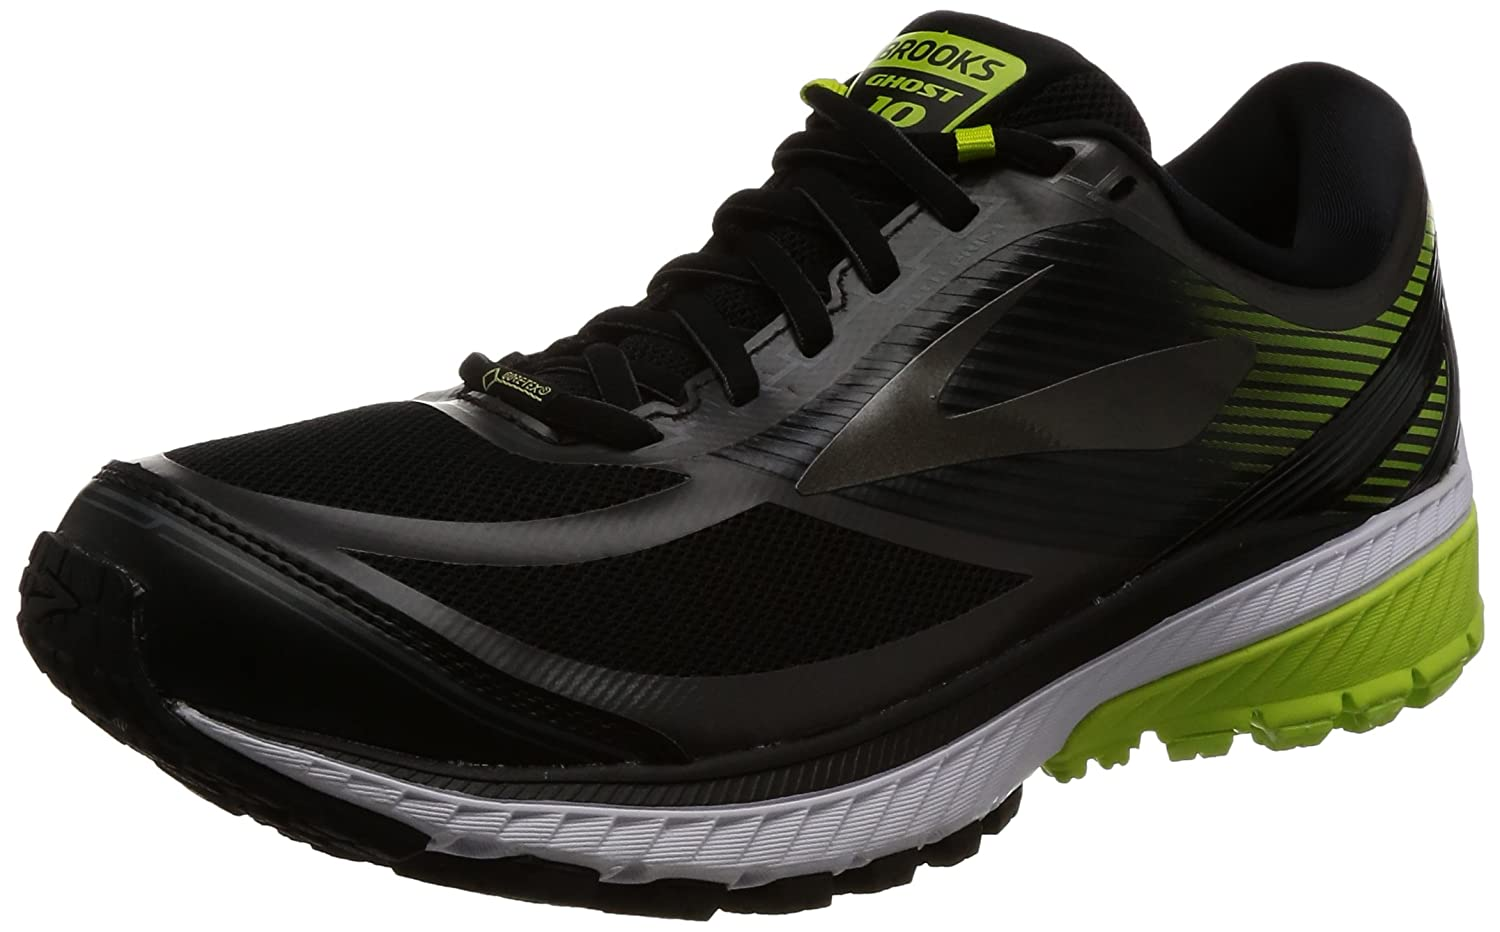 6bb07563c77 Soles don t spook at the thought of tackling extra miles when you re in the  Brooks® Ghost 10 GTX® running shoe.